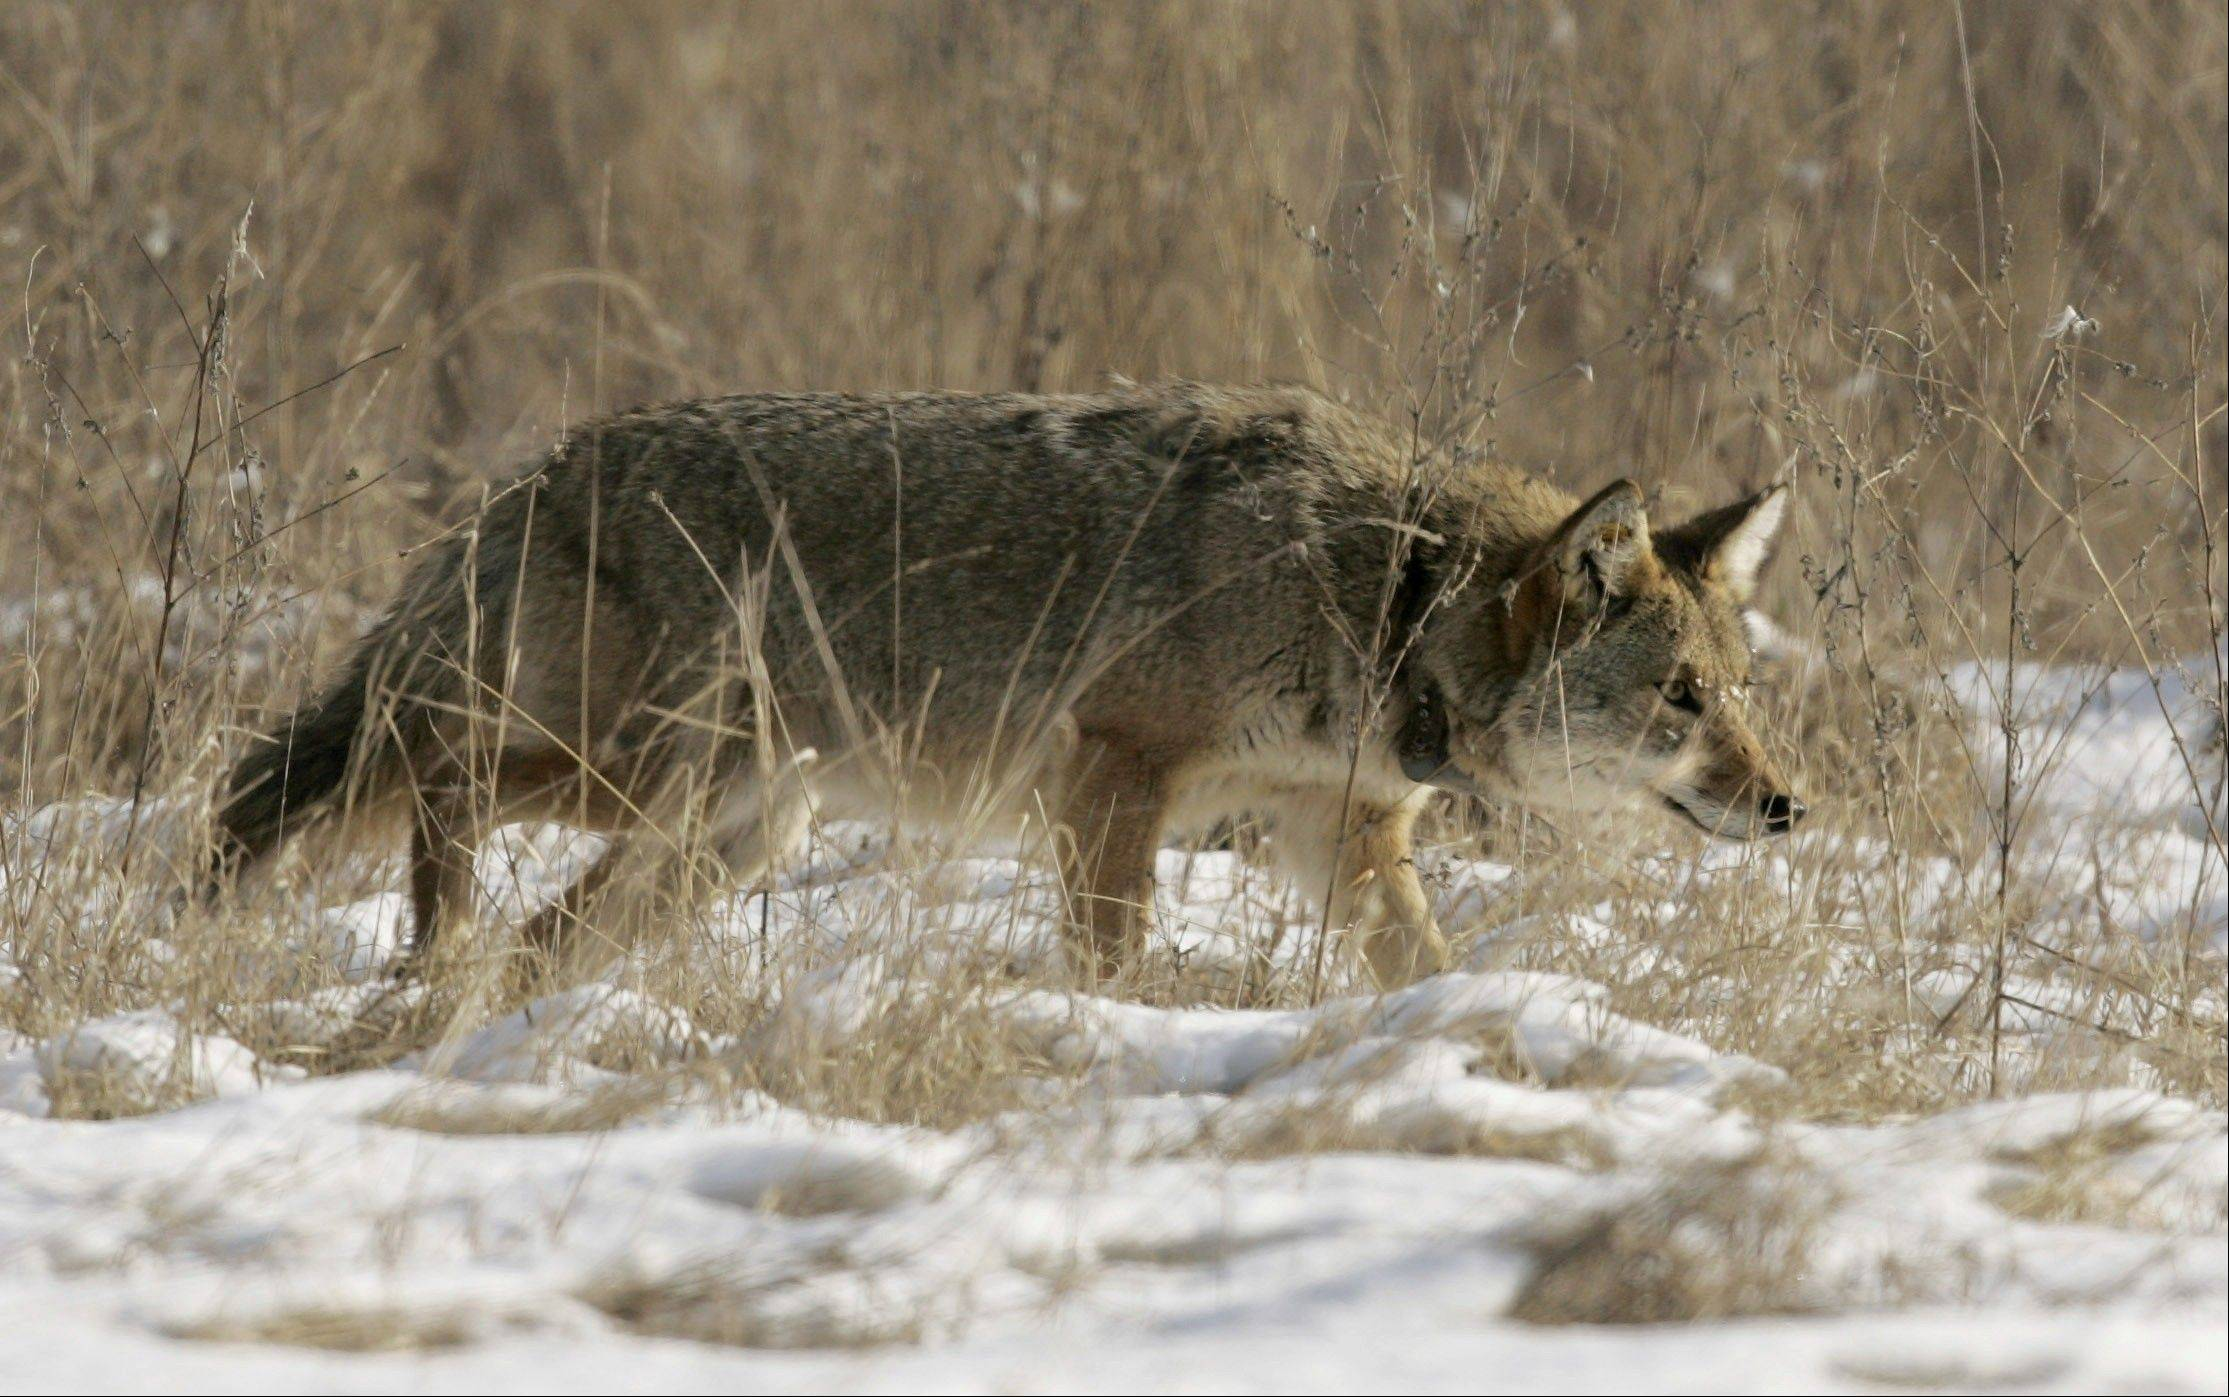 Mating season could bring more coyote sightings